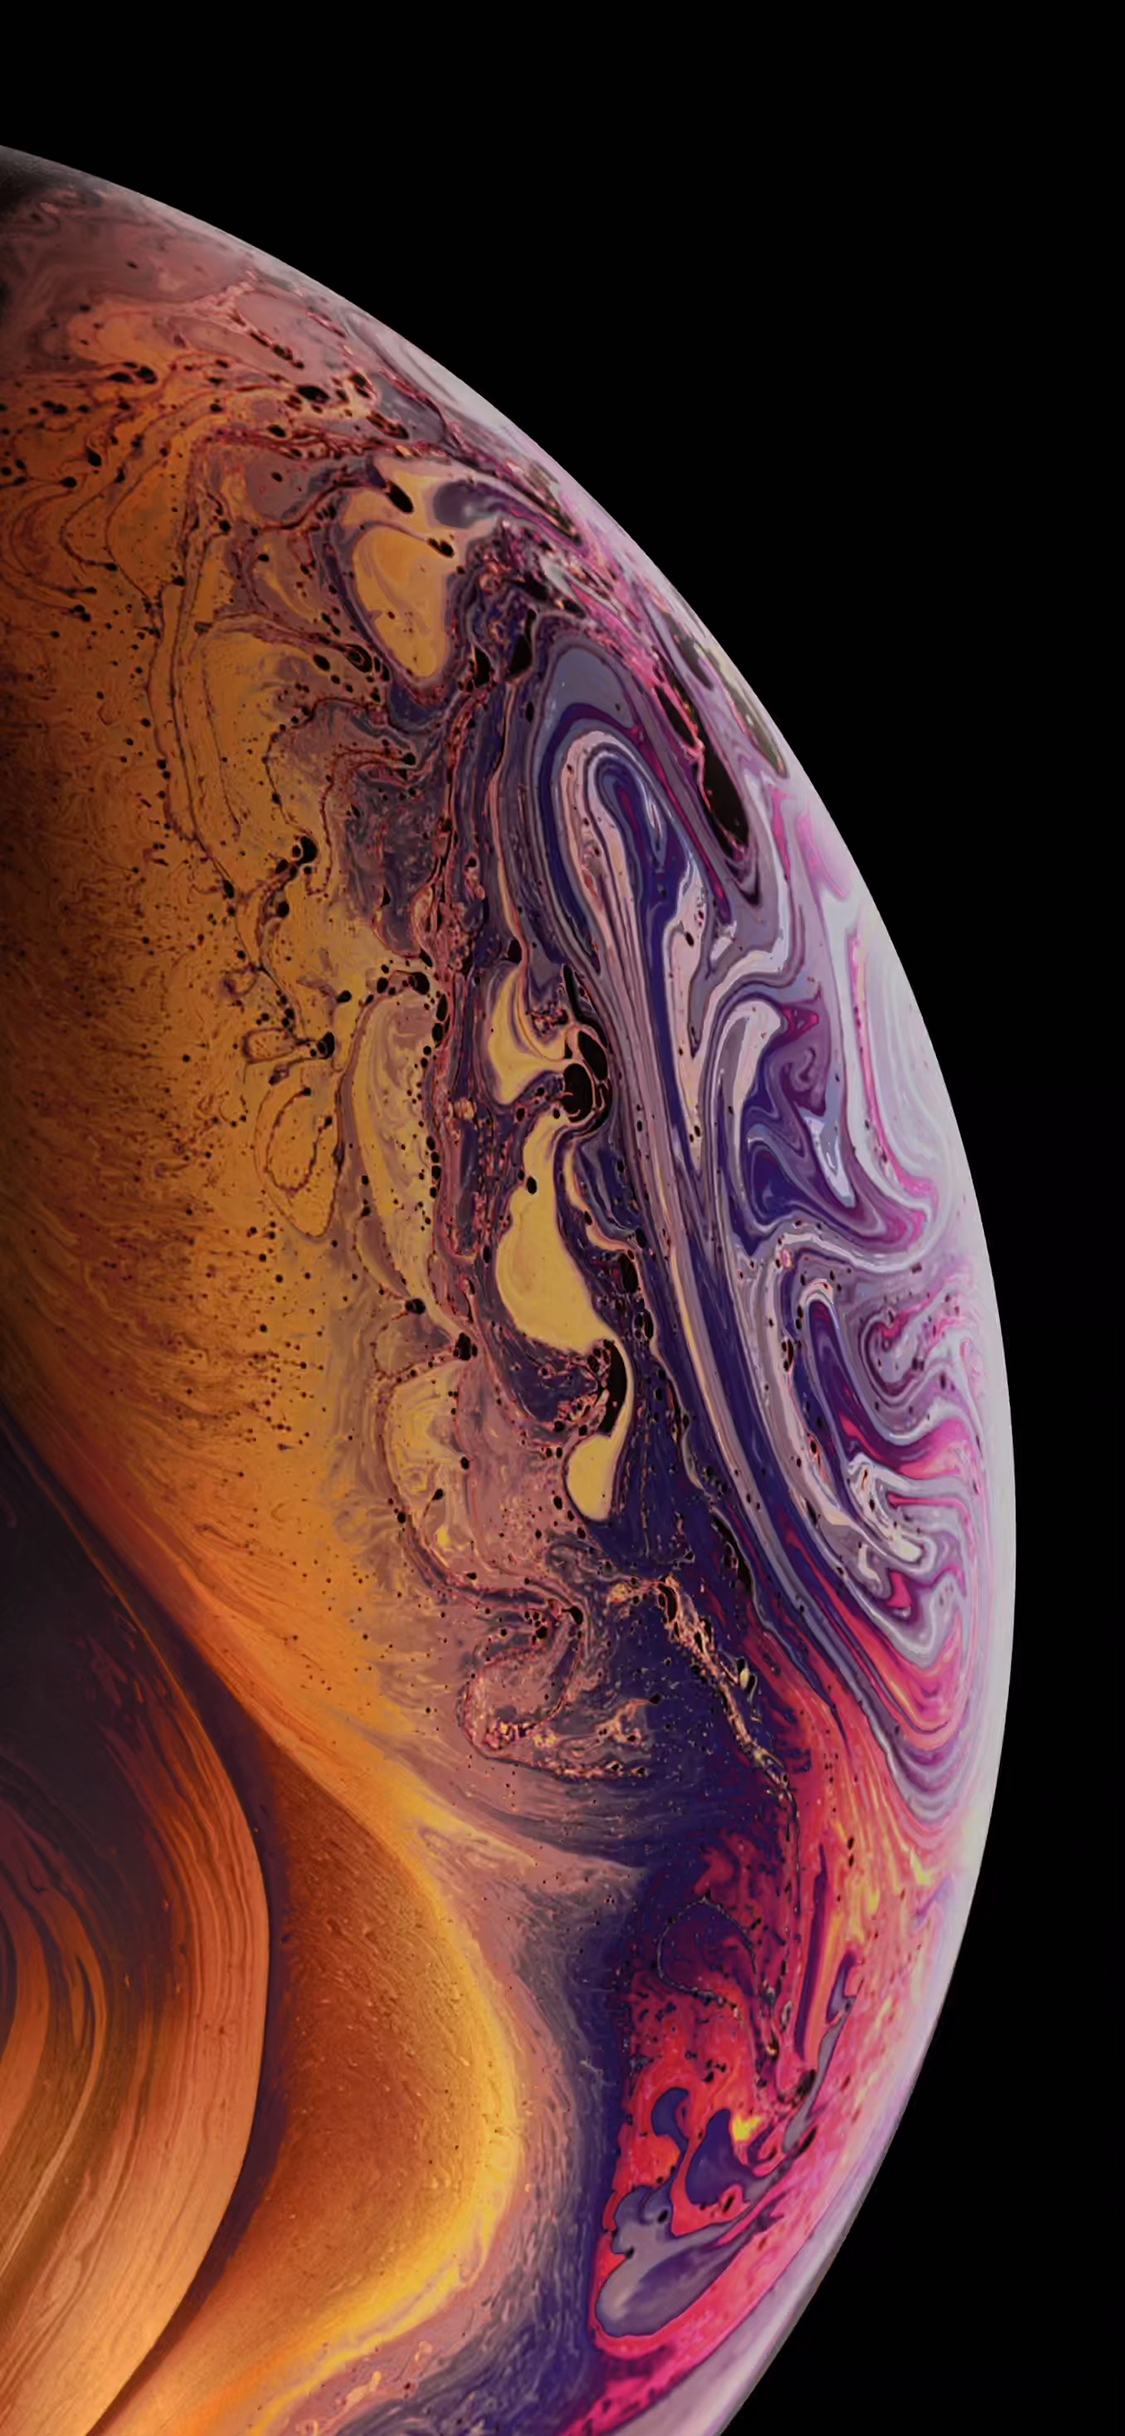 Download Iphone Xs Max 3D Wallpaper Download